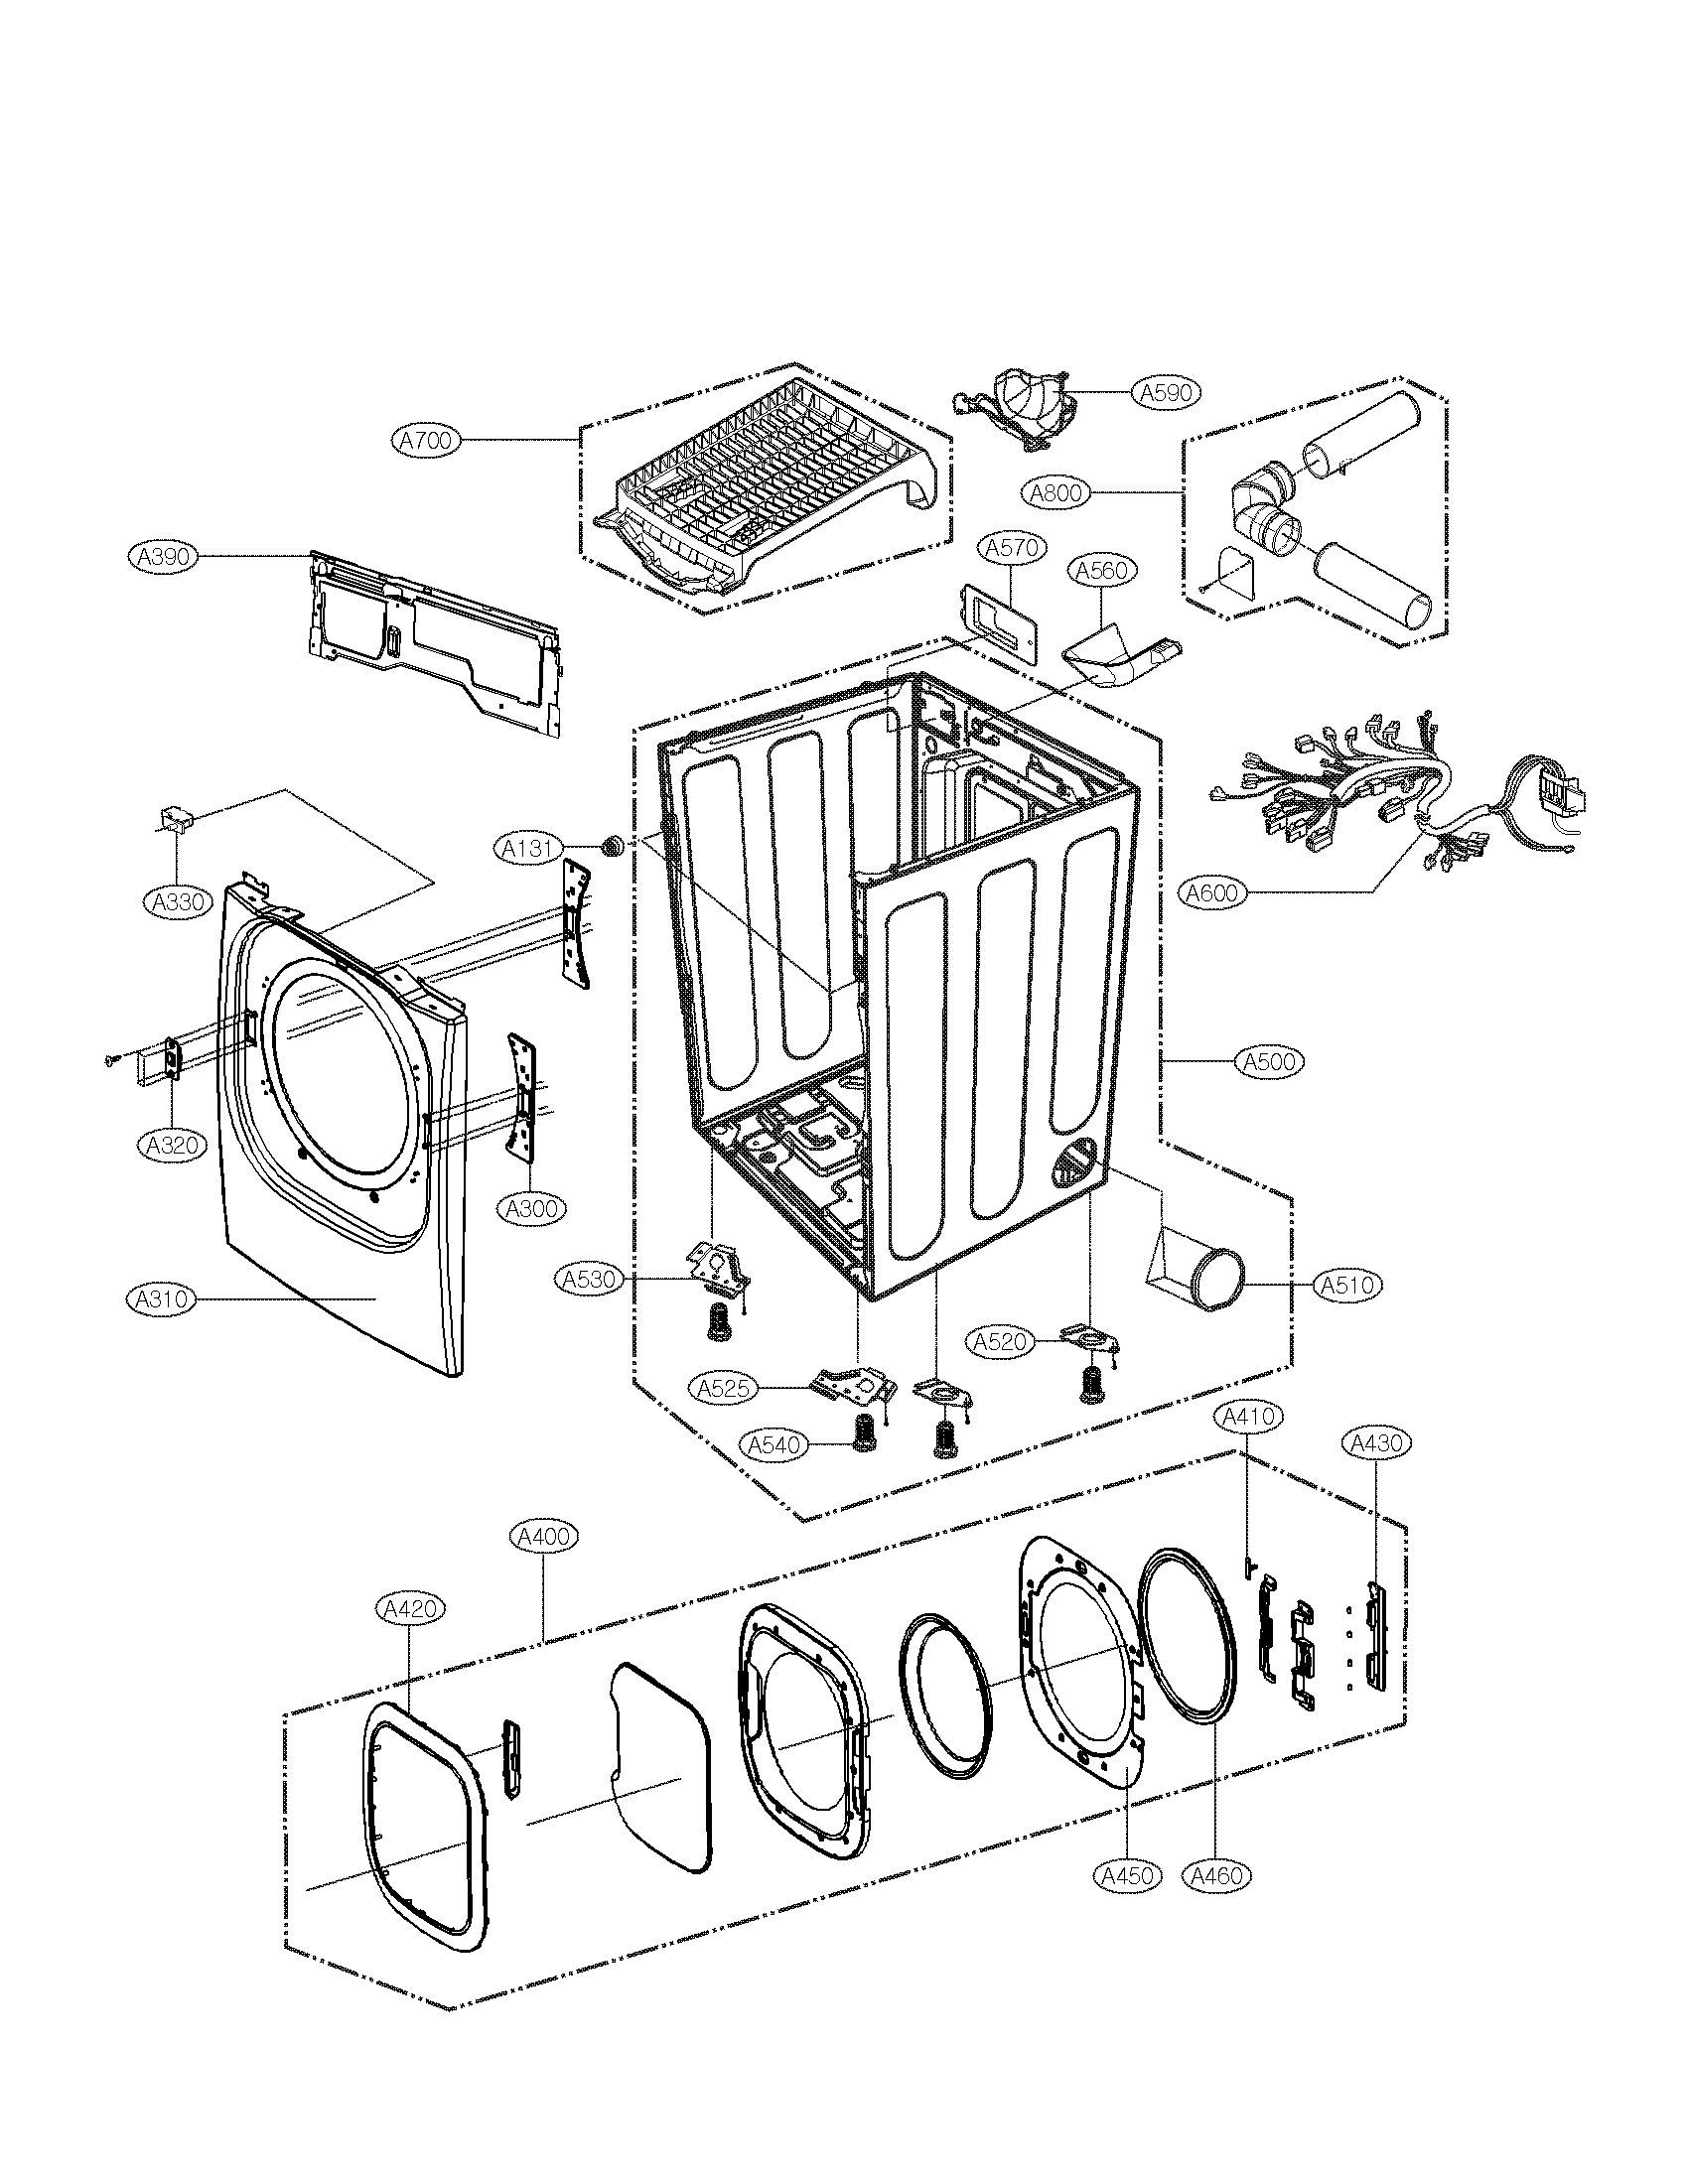 Lg model DLEX3001R residential dryer genuine parts